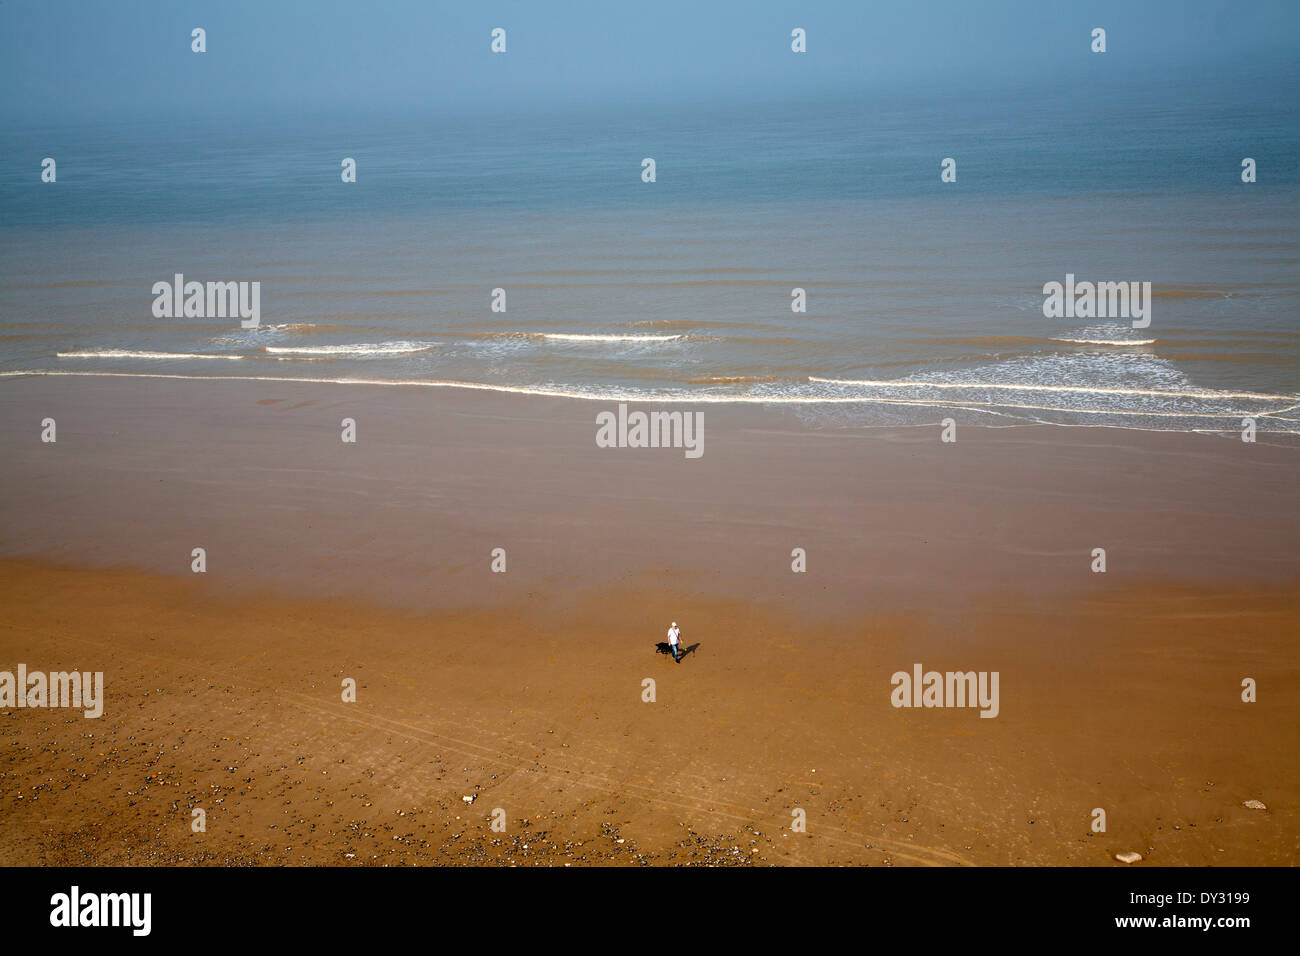 Overhead oblique view of a man walking across wide sandy beach at low tide, Overstrand, Norfolk, England - Stock Image